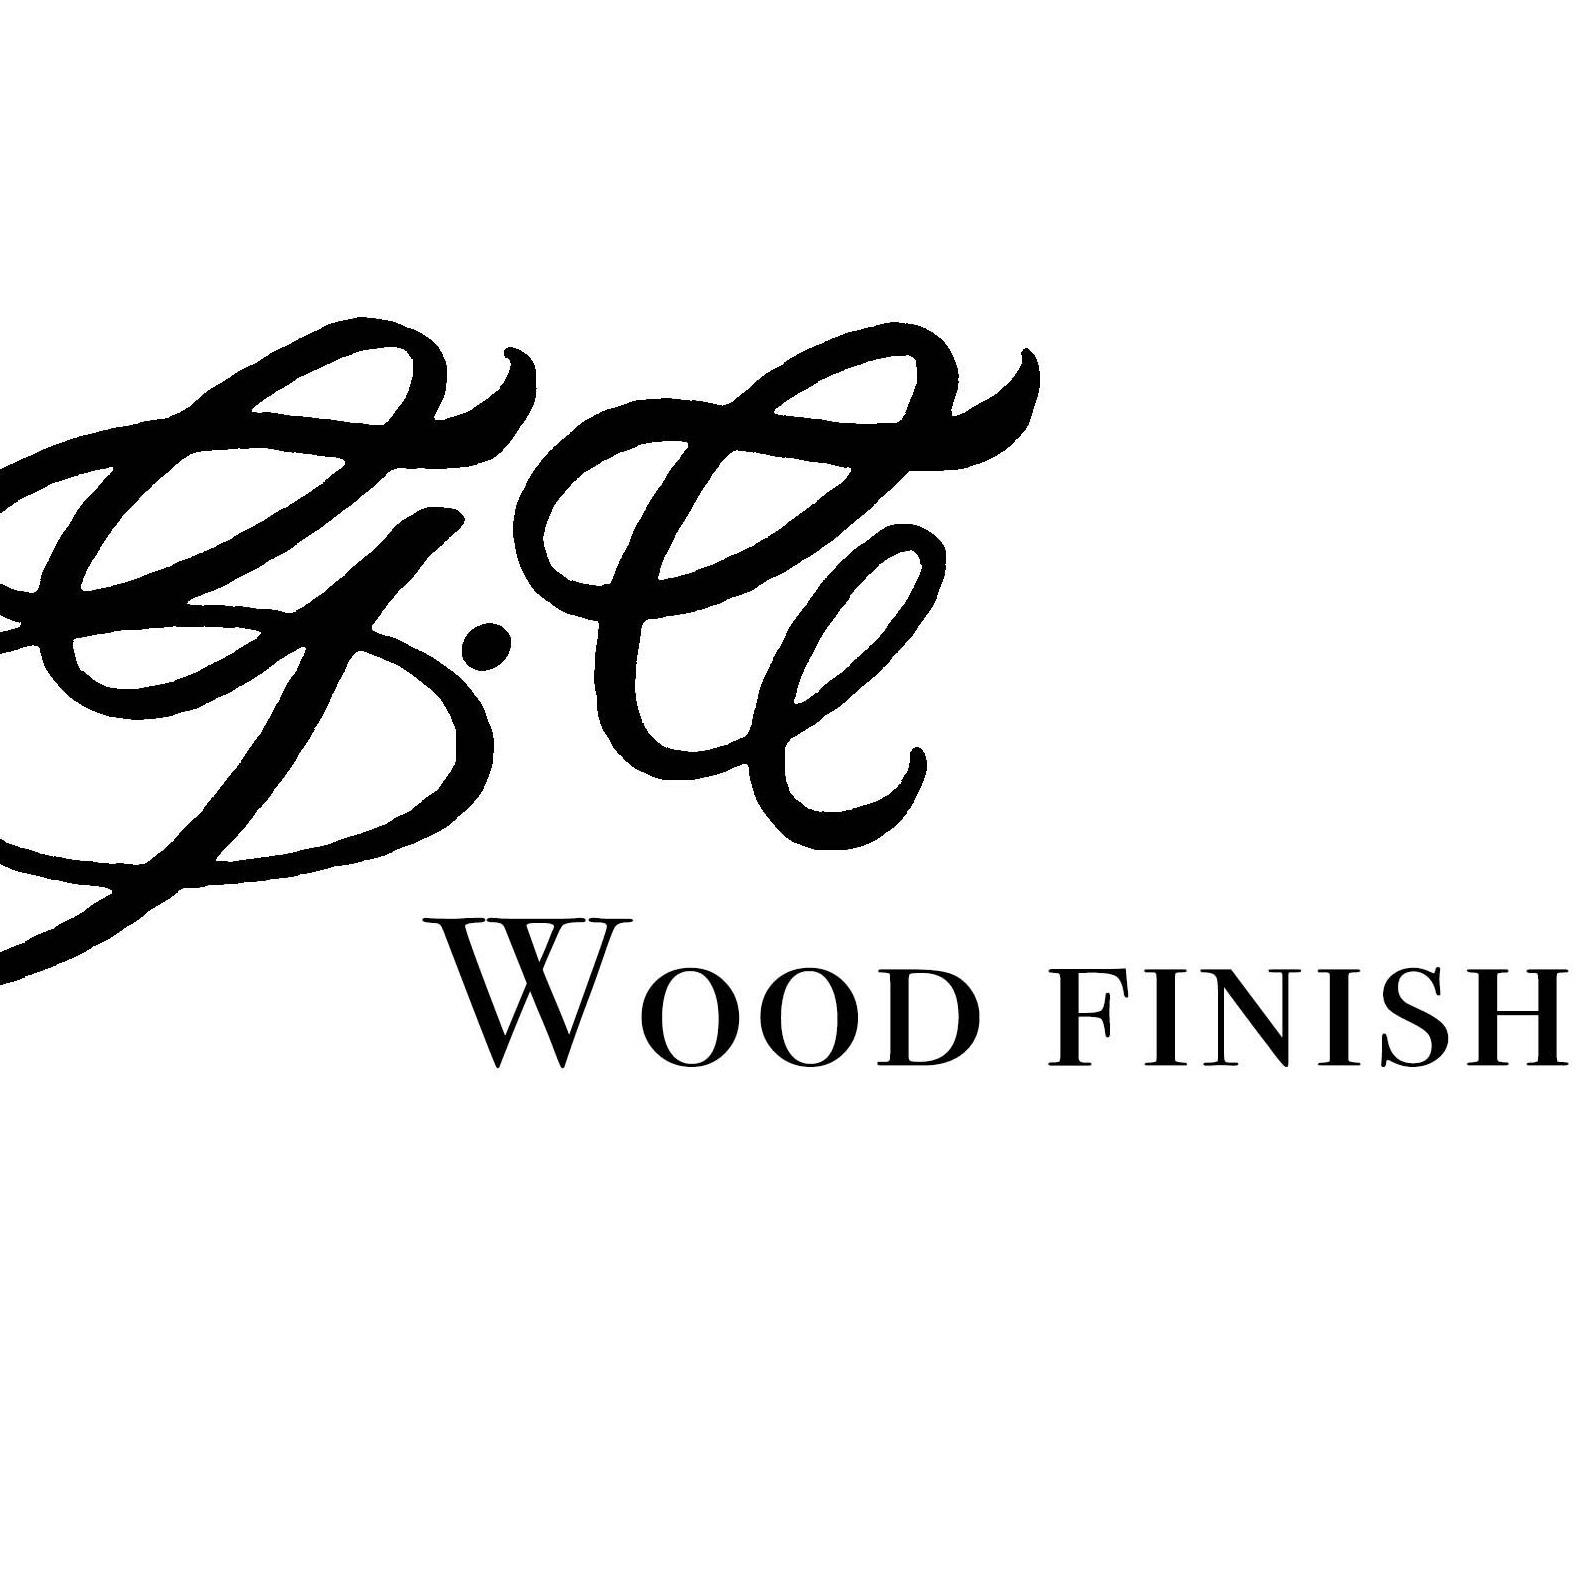 GC Wood Finish